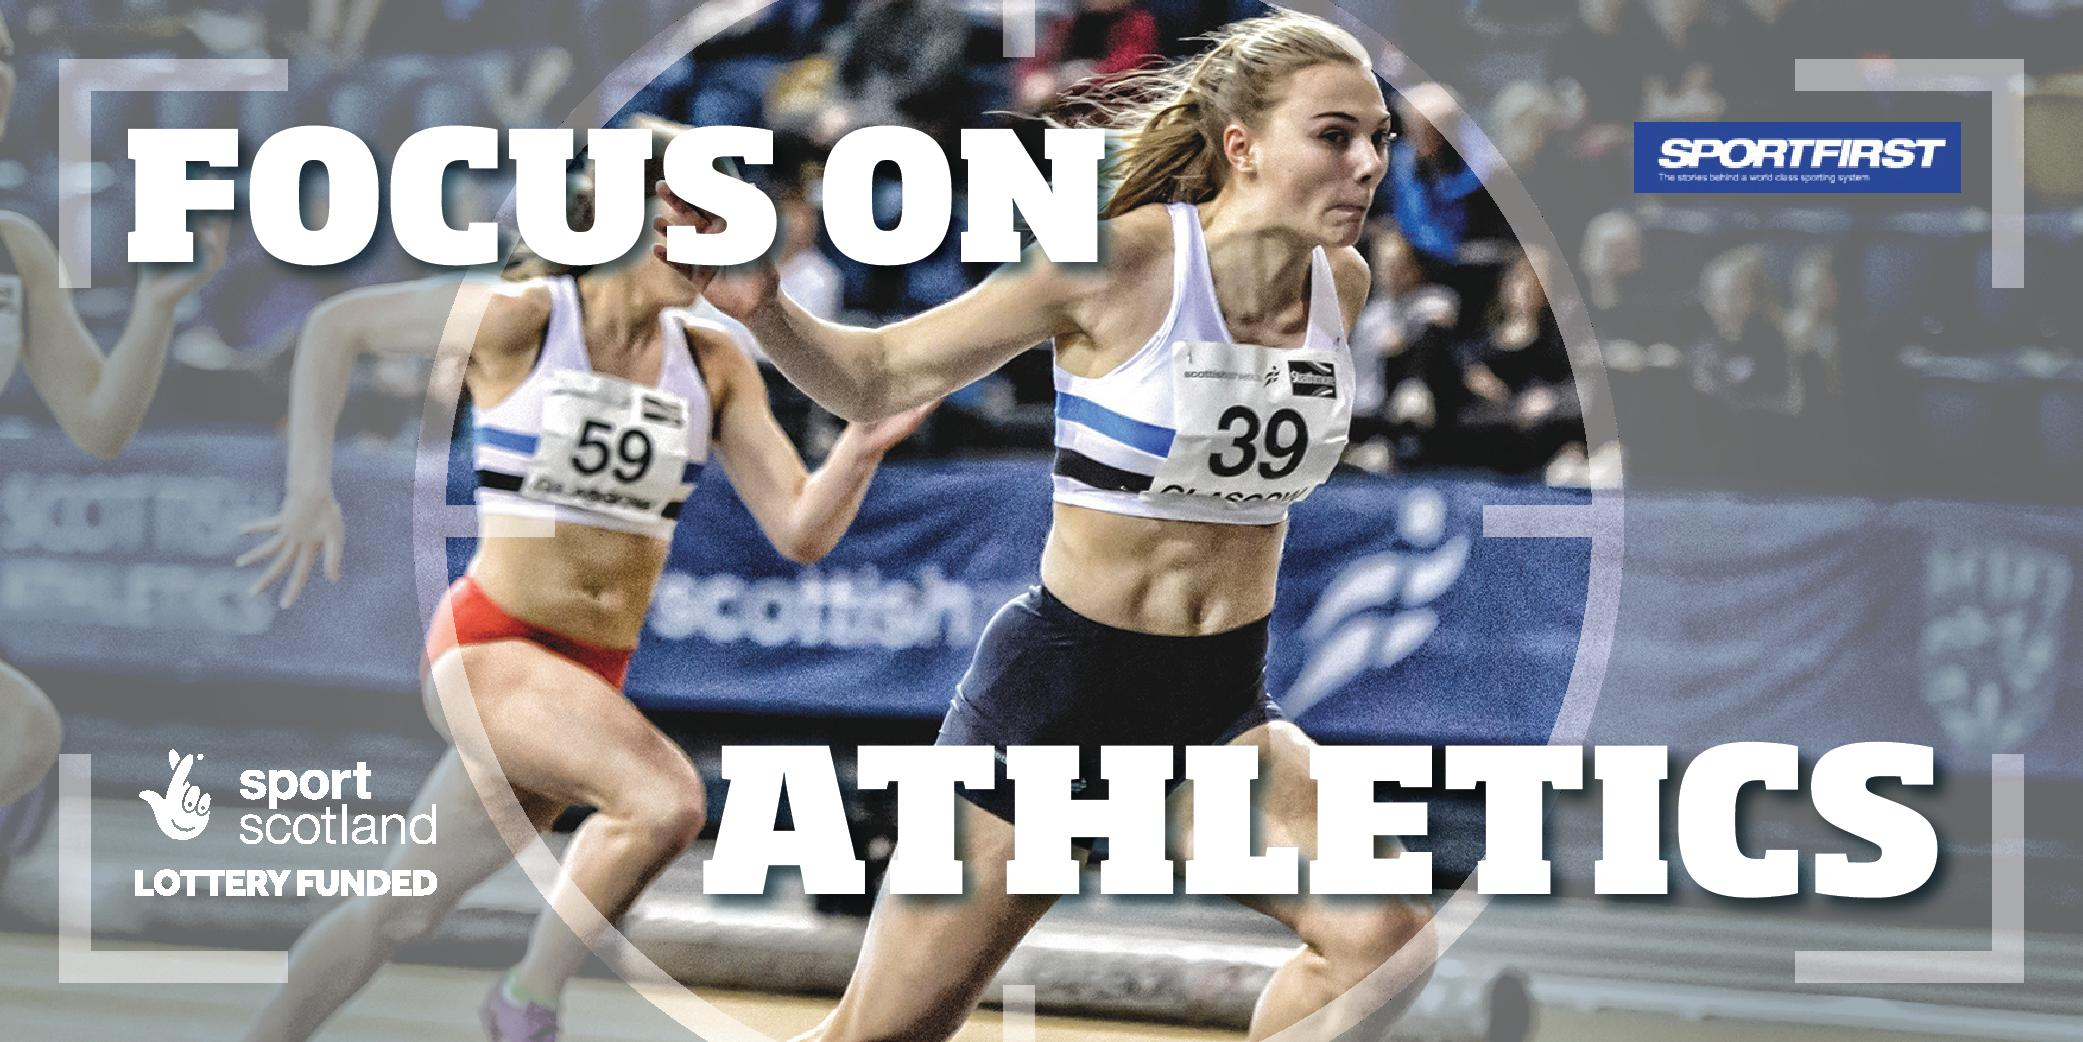 Focus on Athletics